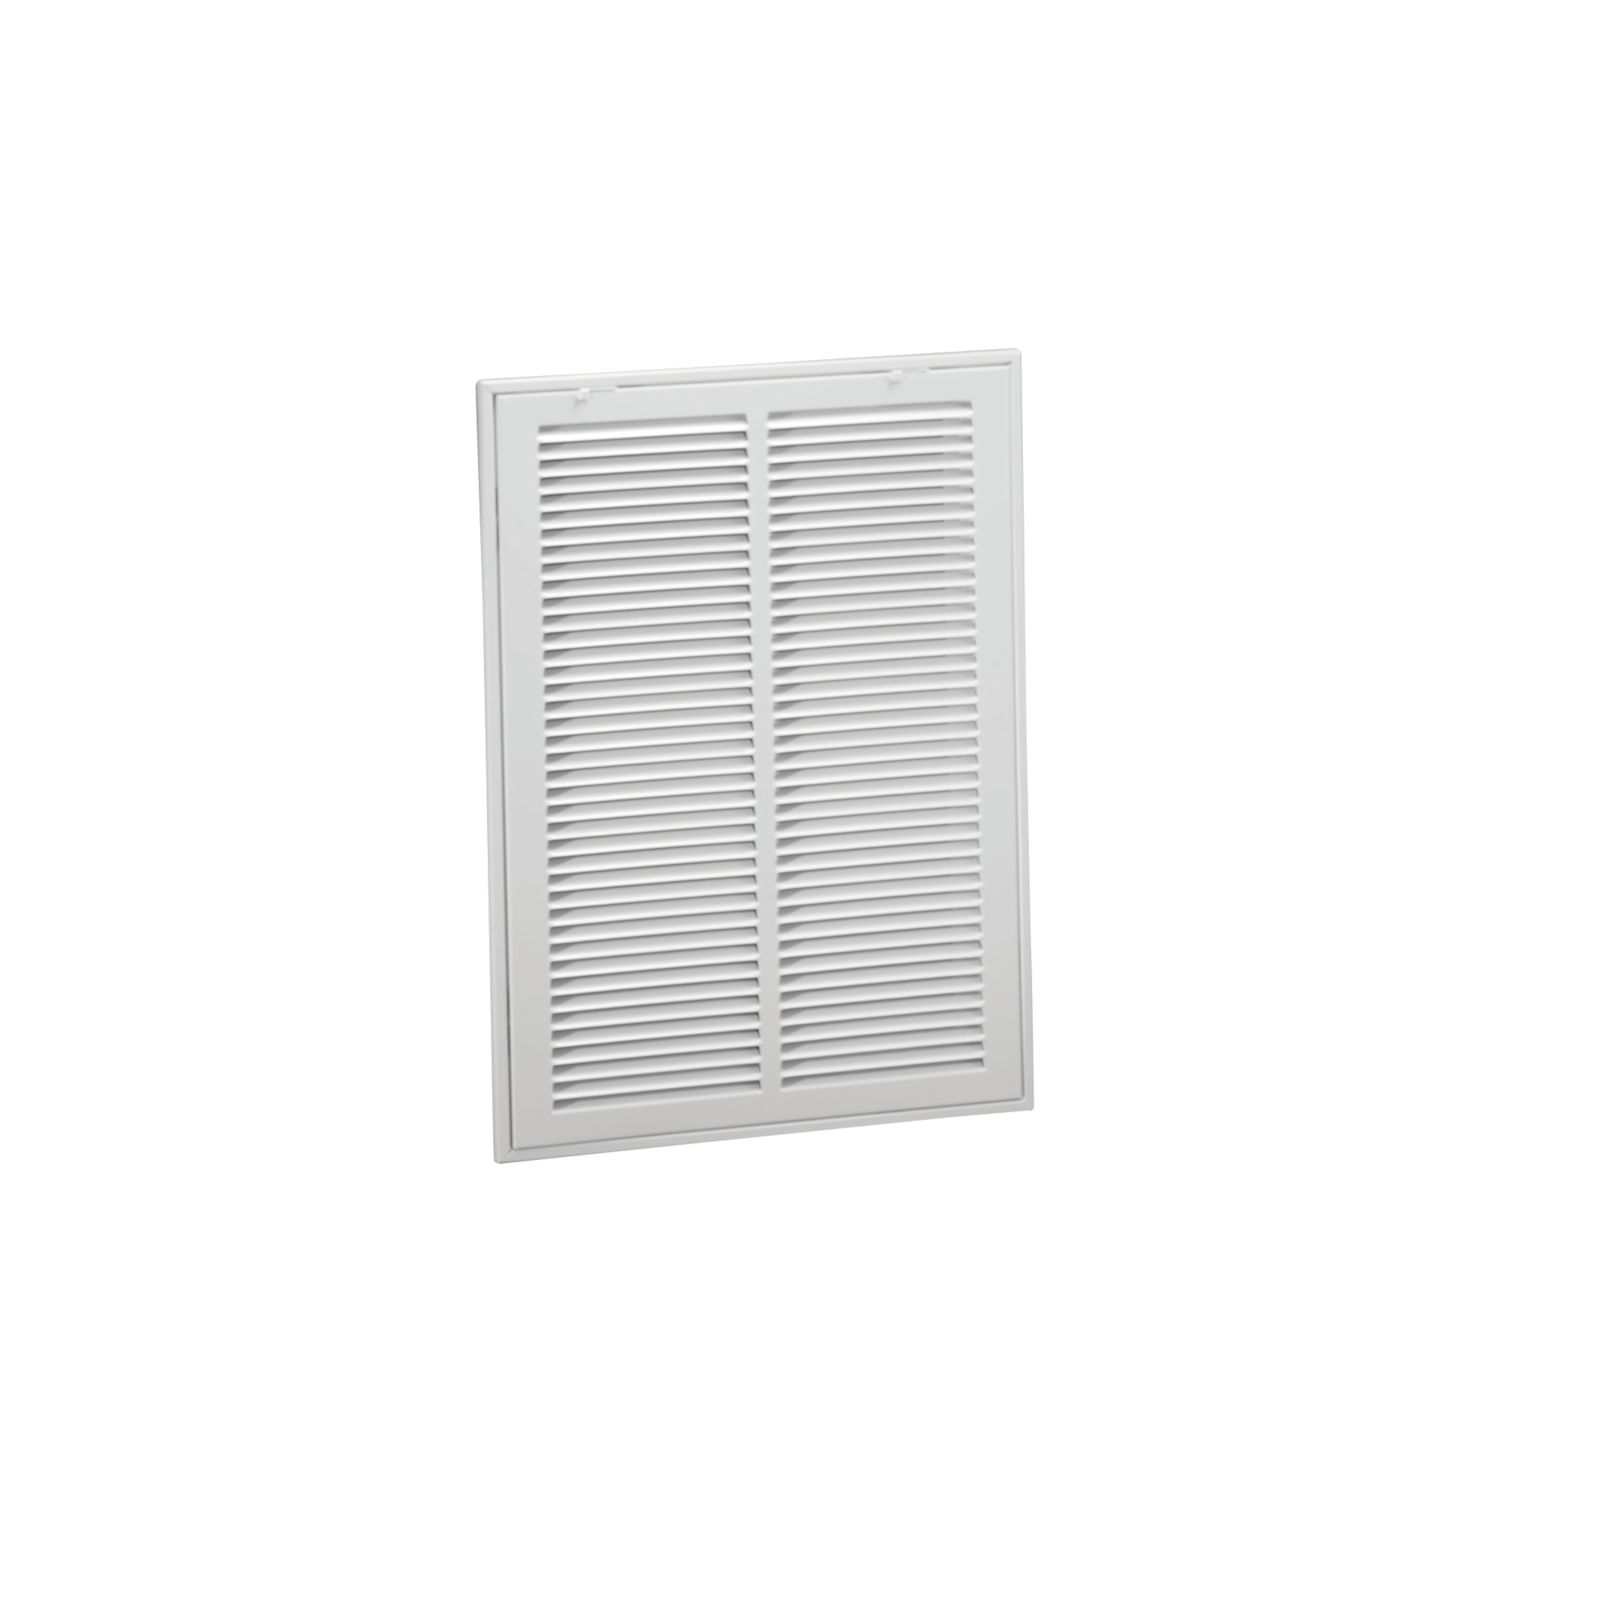 "Hart & Cooley 073184 - #673 Steel Return Air Filter Grille, White Finish, 16"" X 24"""